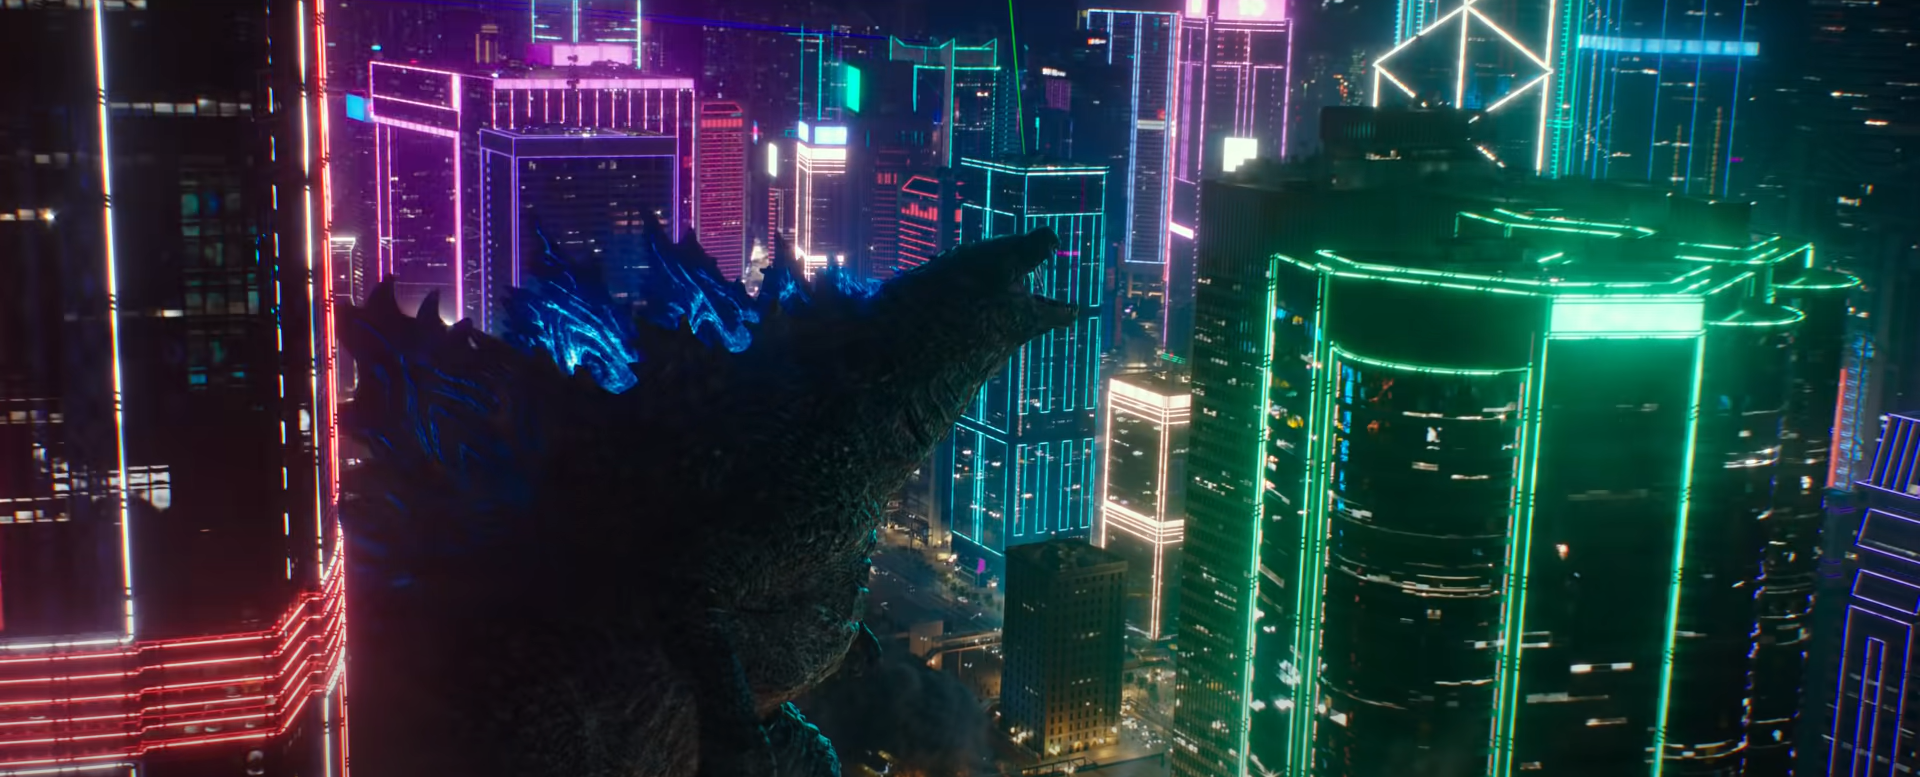 Godzilla walks through Hong Kong's neon-lit buildings and roars